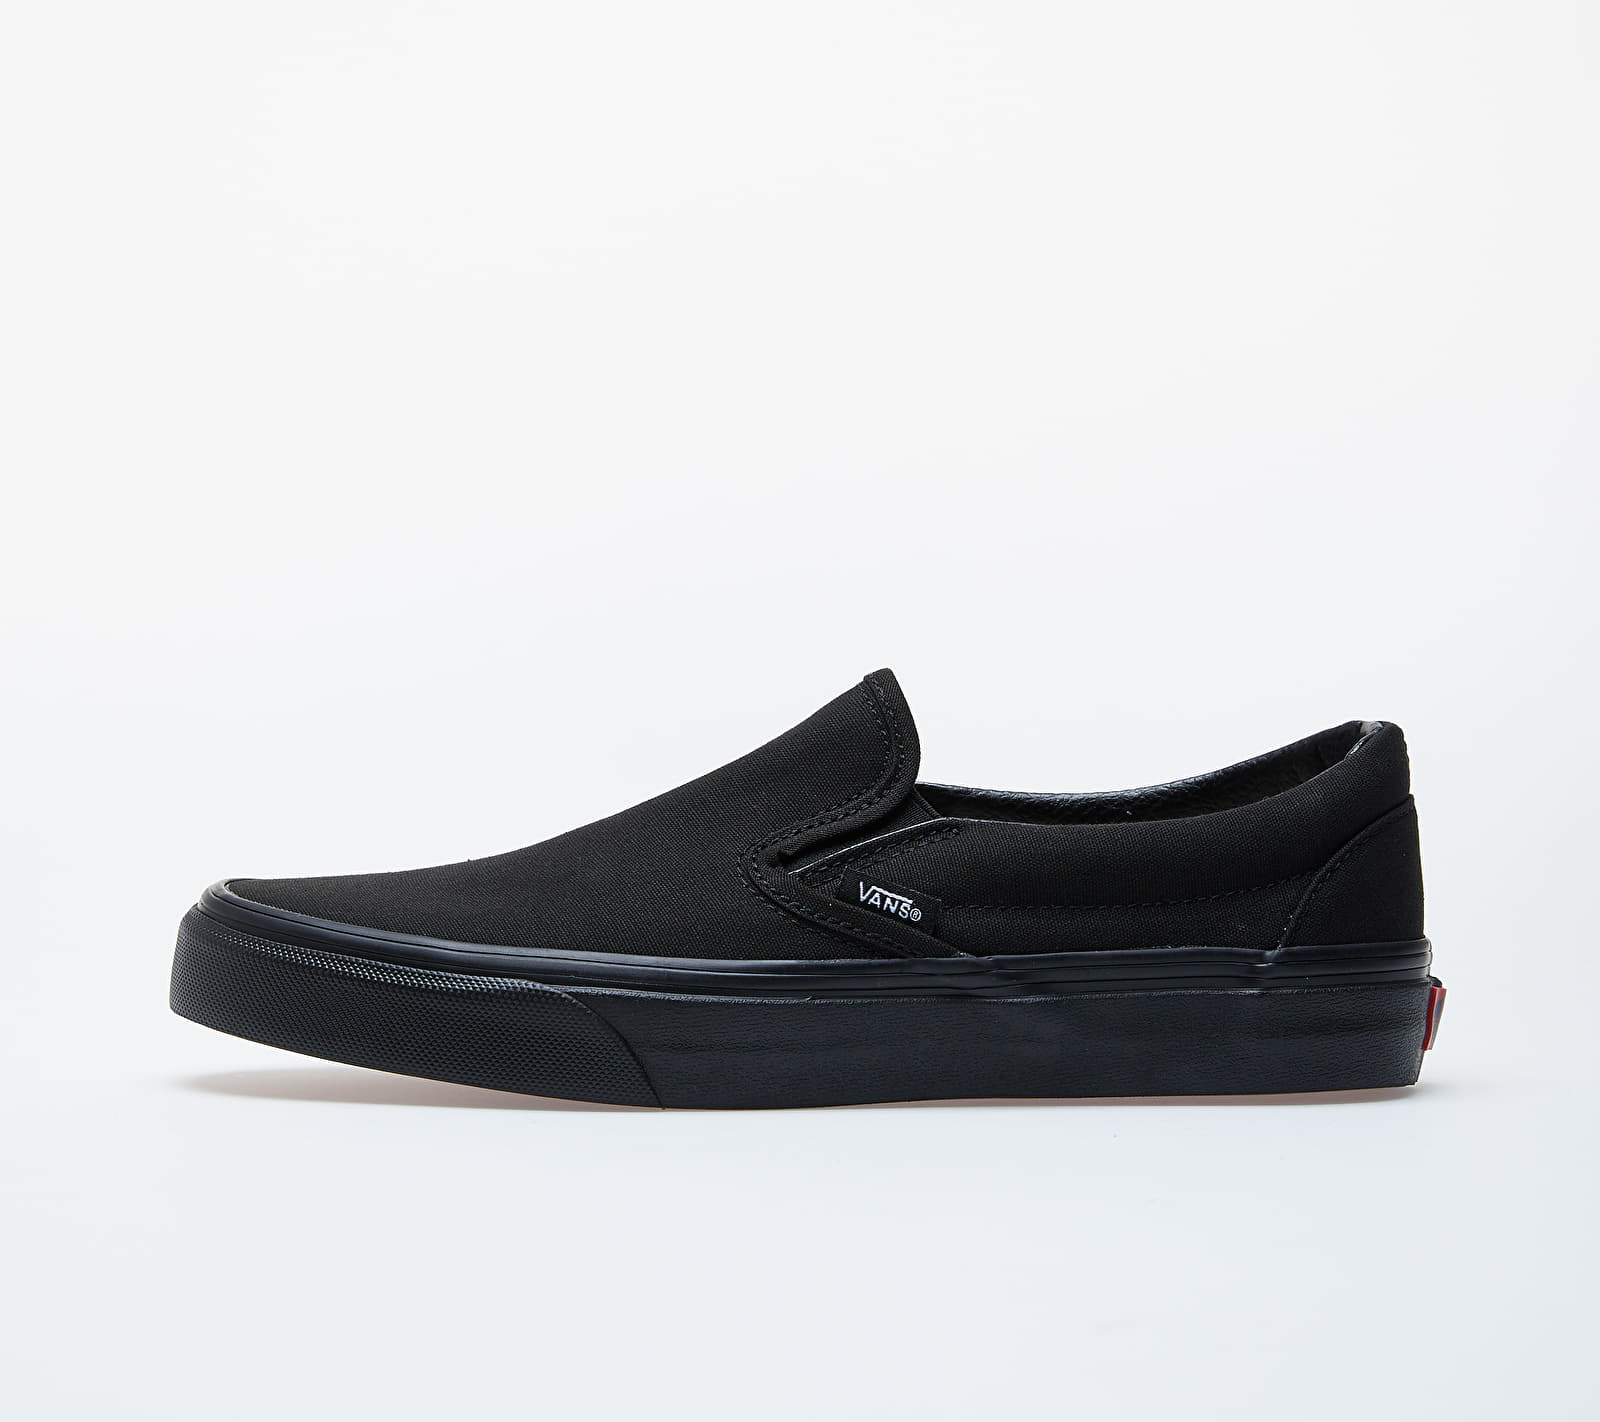 Vans Classic Slip-On Black/ Black EUR 36.5